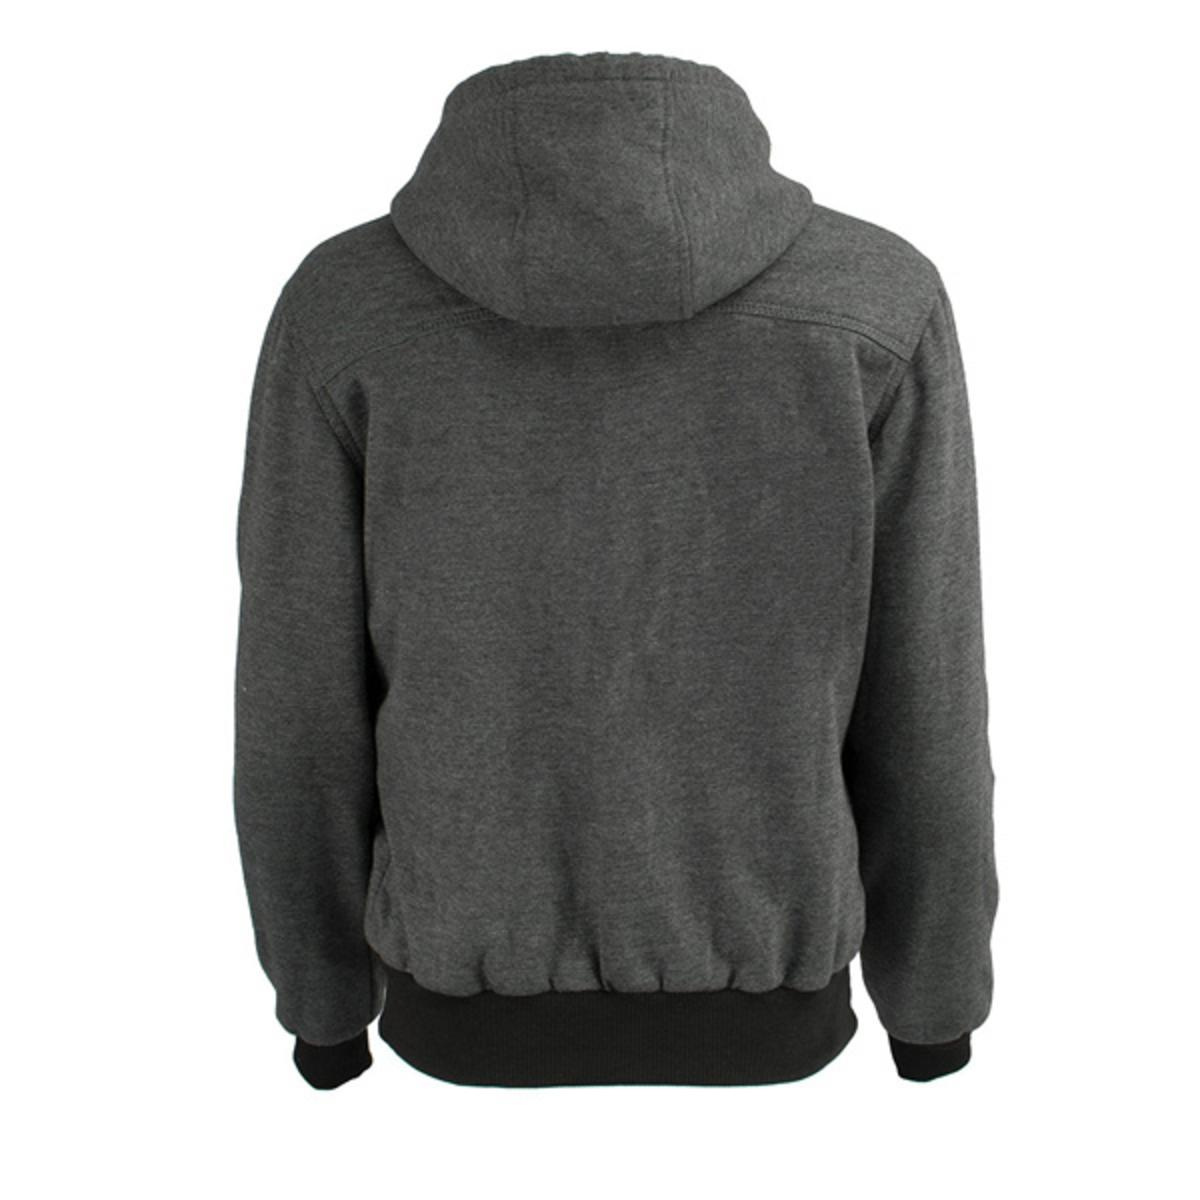 Milwaukee Performance Mens Heated Hoodie with Front and Back Heating Elements Grey, Large